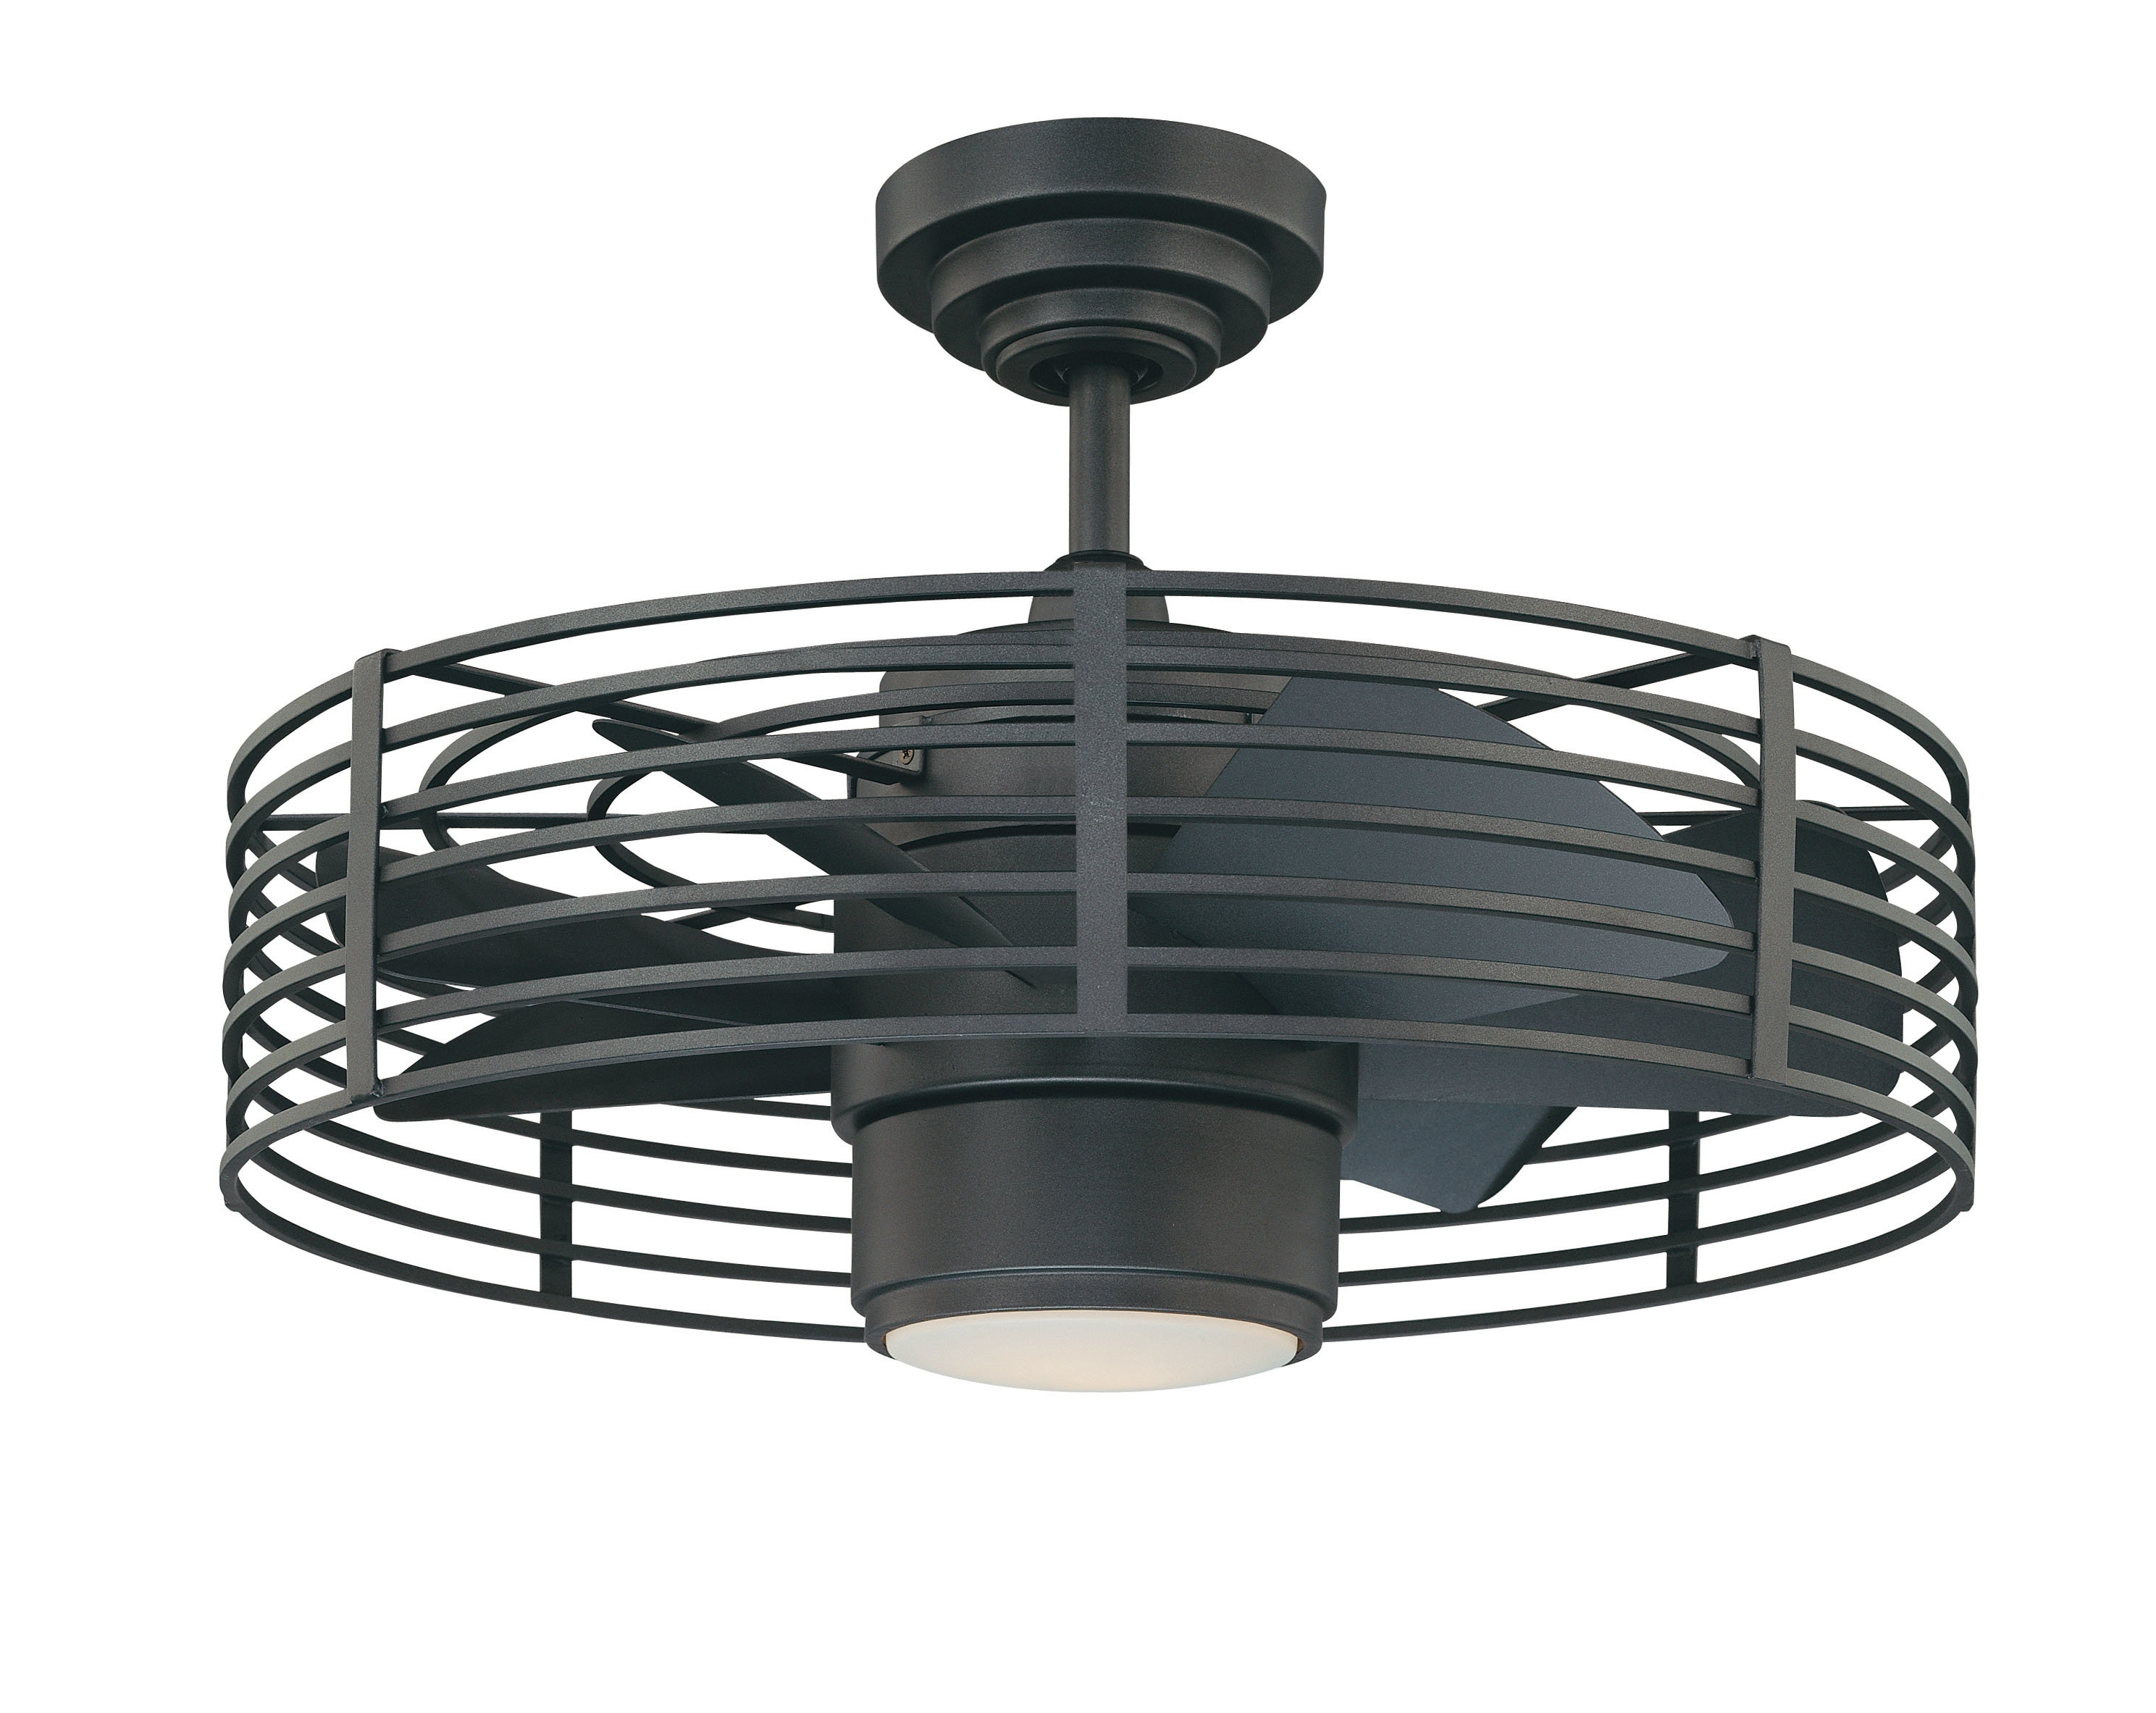 Photo Gallery Of Outdoor Ceiling Fans With Guard (showing 9 Throughout 2020 Glasgow 7 Blade Ceiling Fans (View 6 of 20)